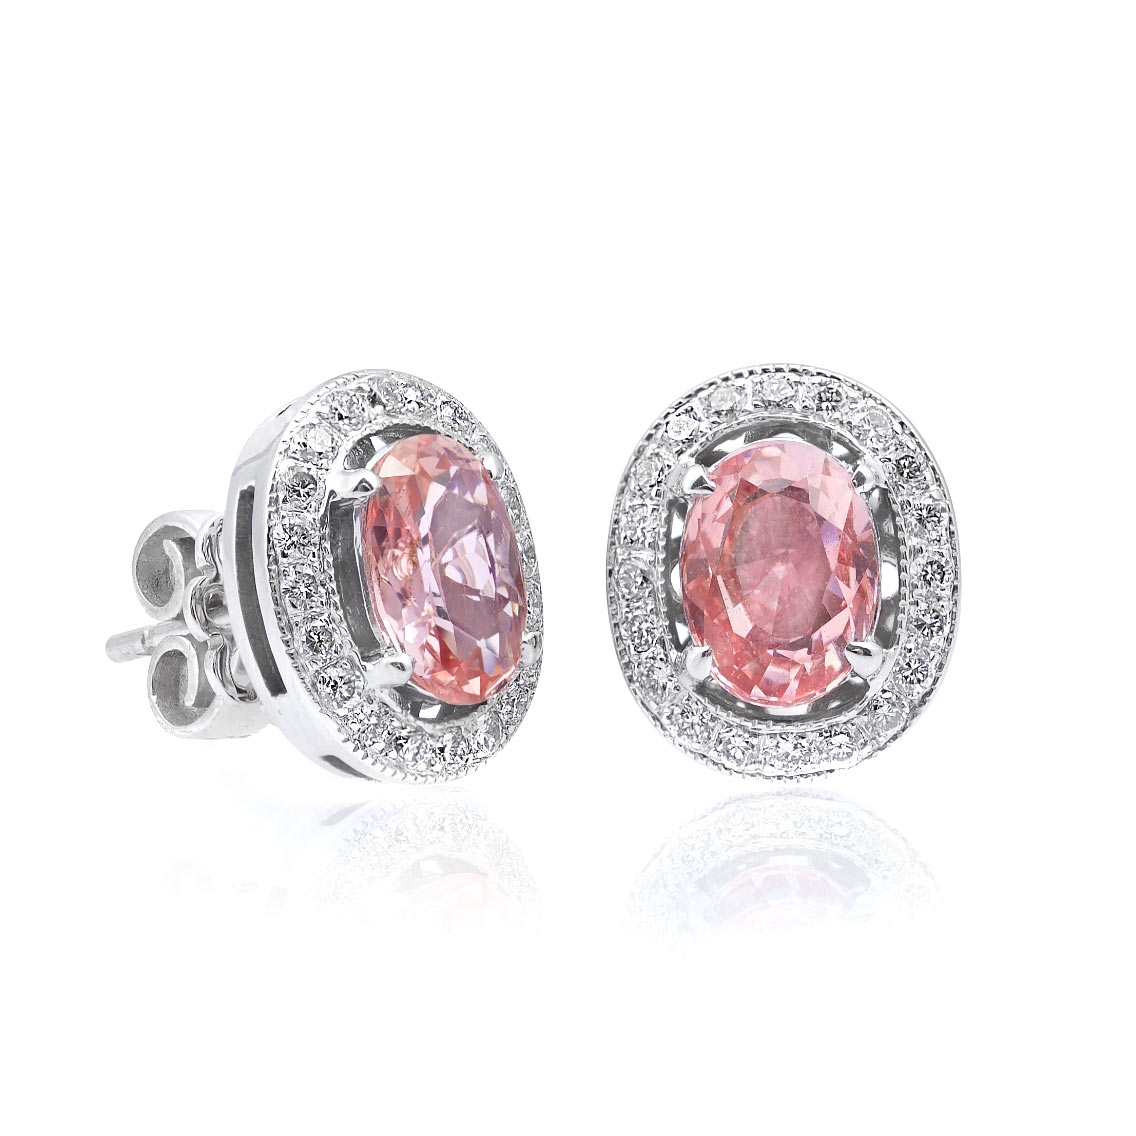 lot total a registers kong autumn fine sothebys magnificent earrings jewels usd jadeite hong diamond sale and ring of october padparadscha million sapphire sotheby s